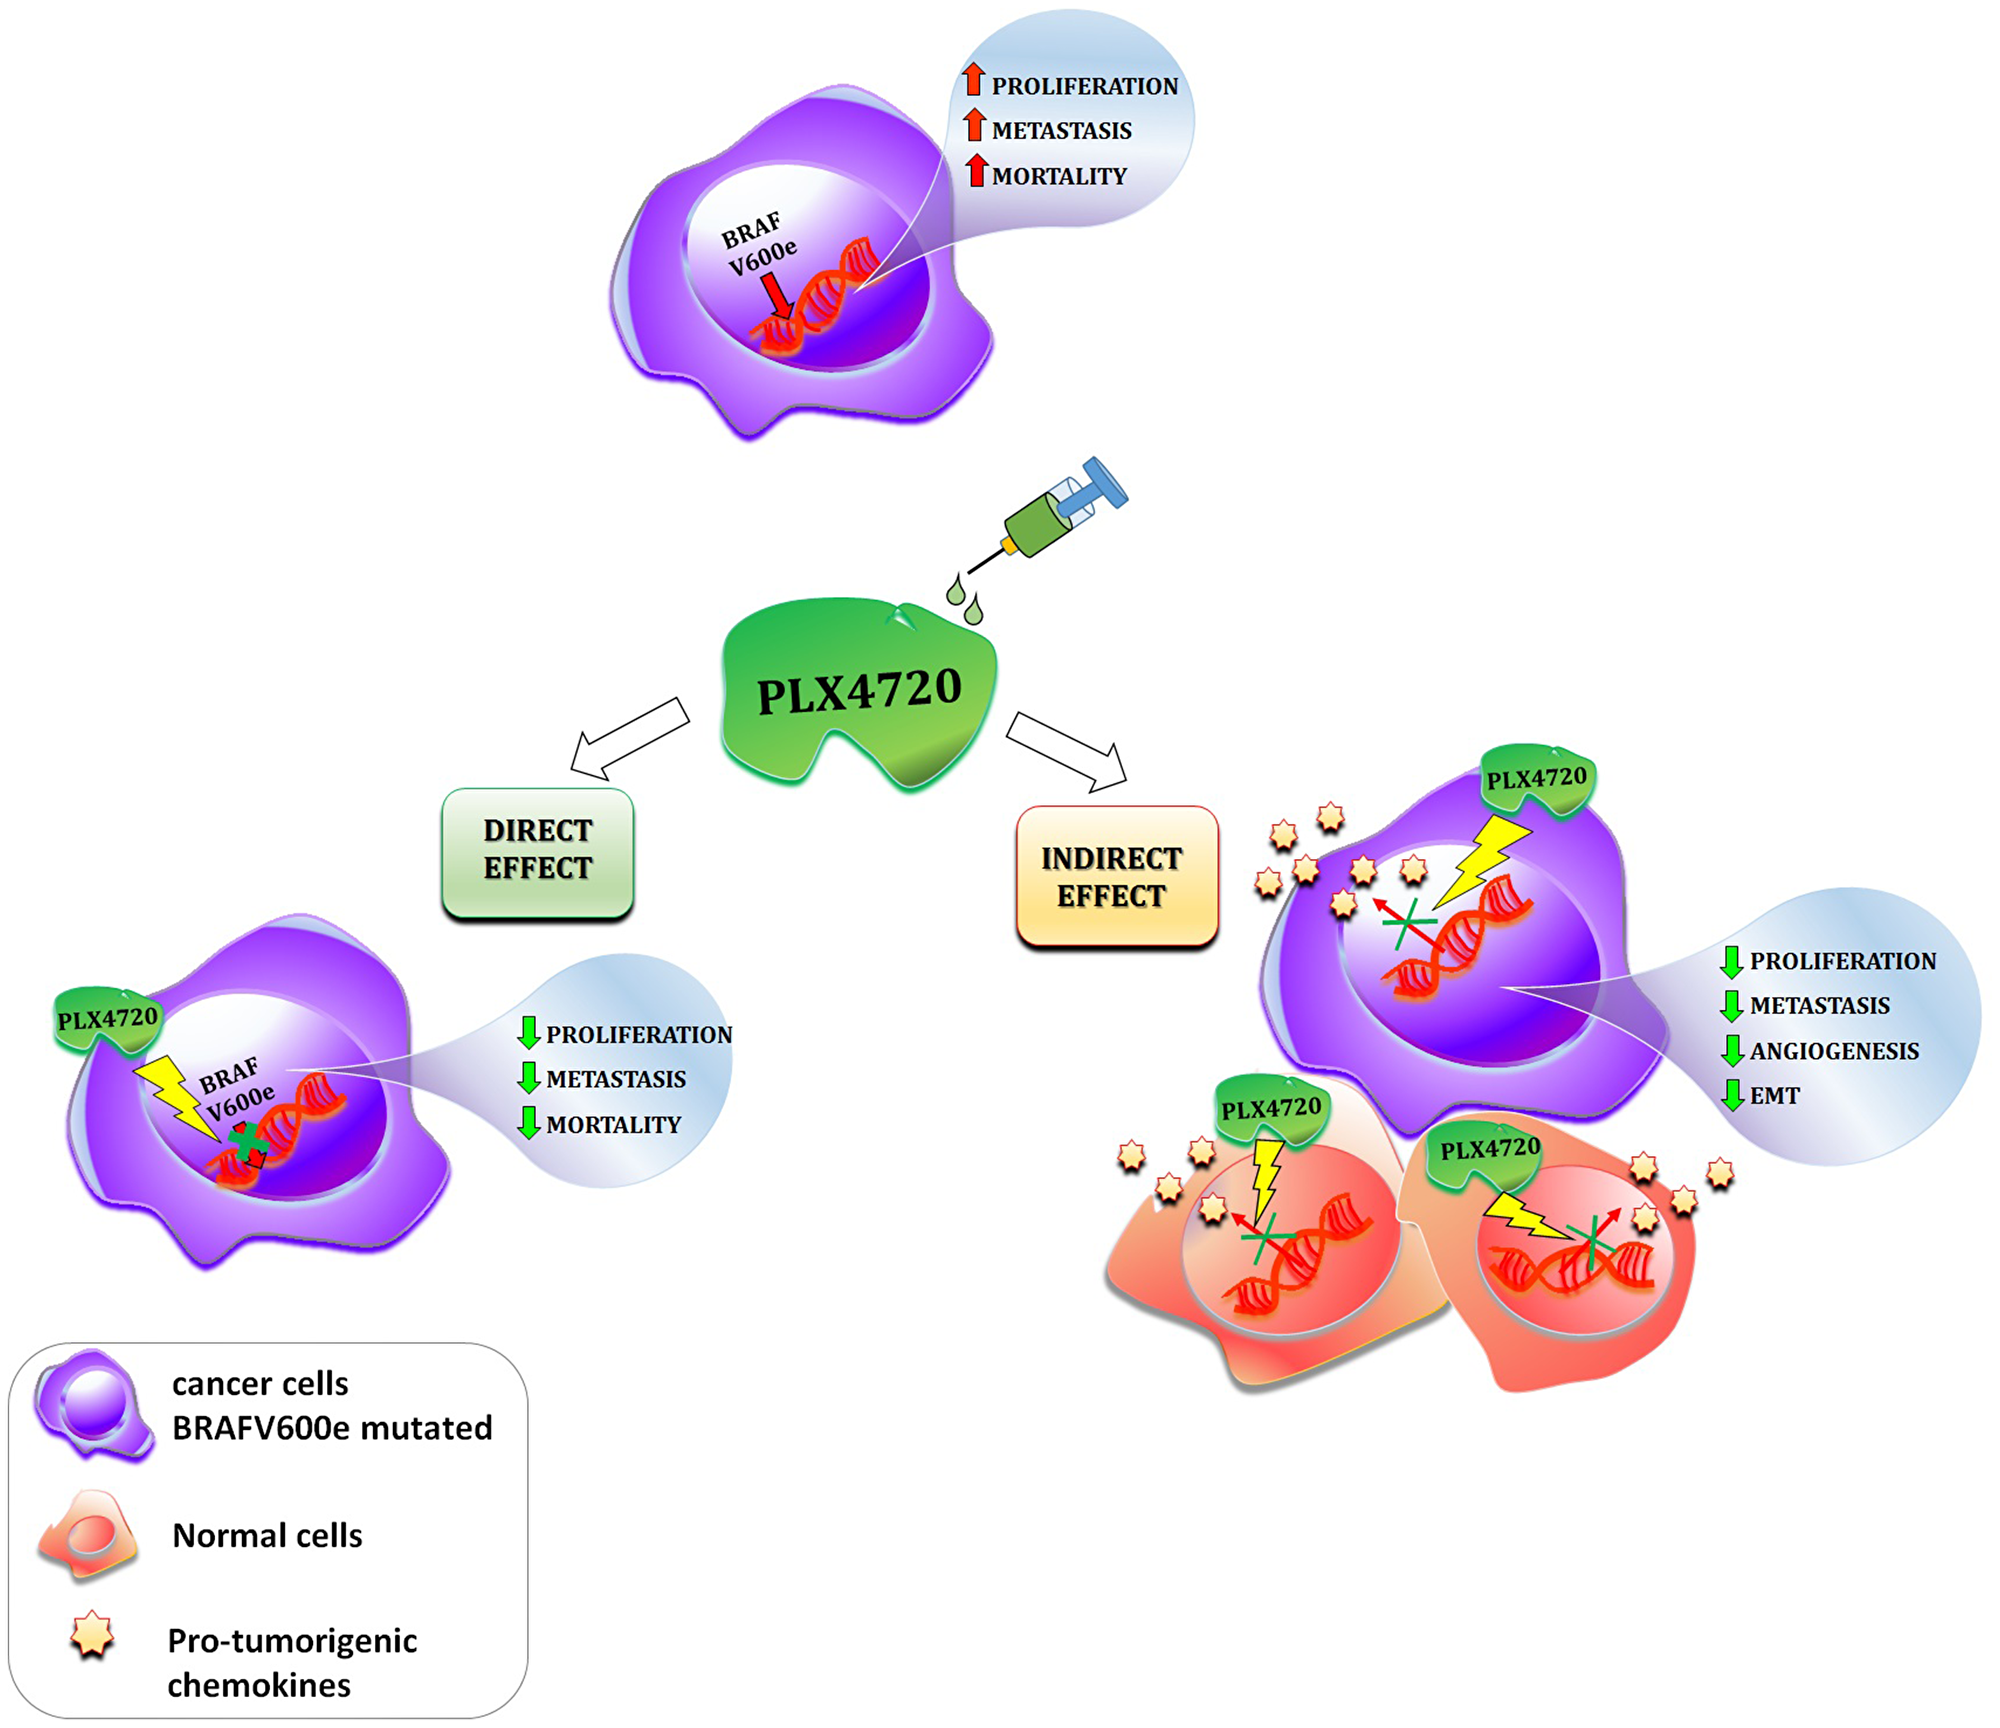 Schematic description of the direct and indirect effects of a given BRAF-inhibitor (PLX4720) in cancer.